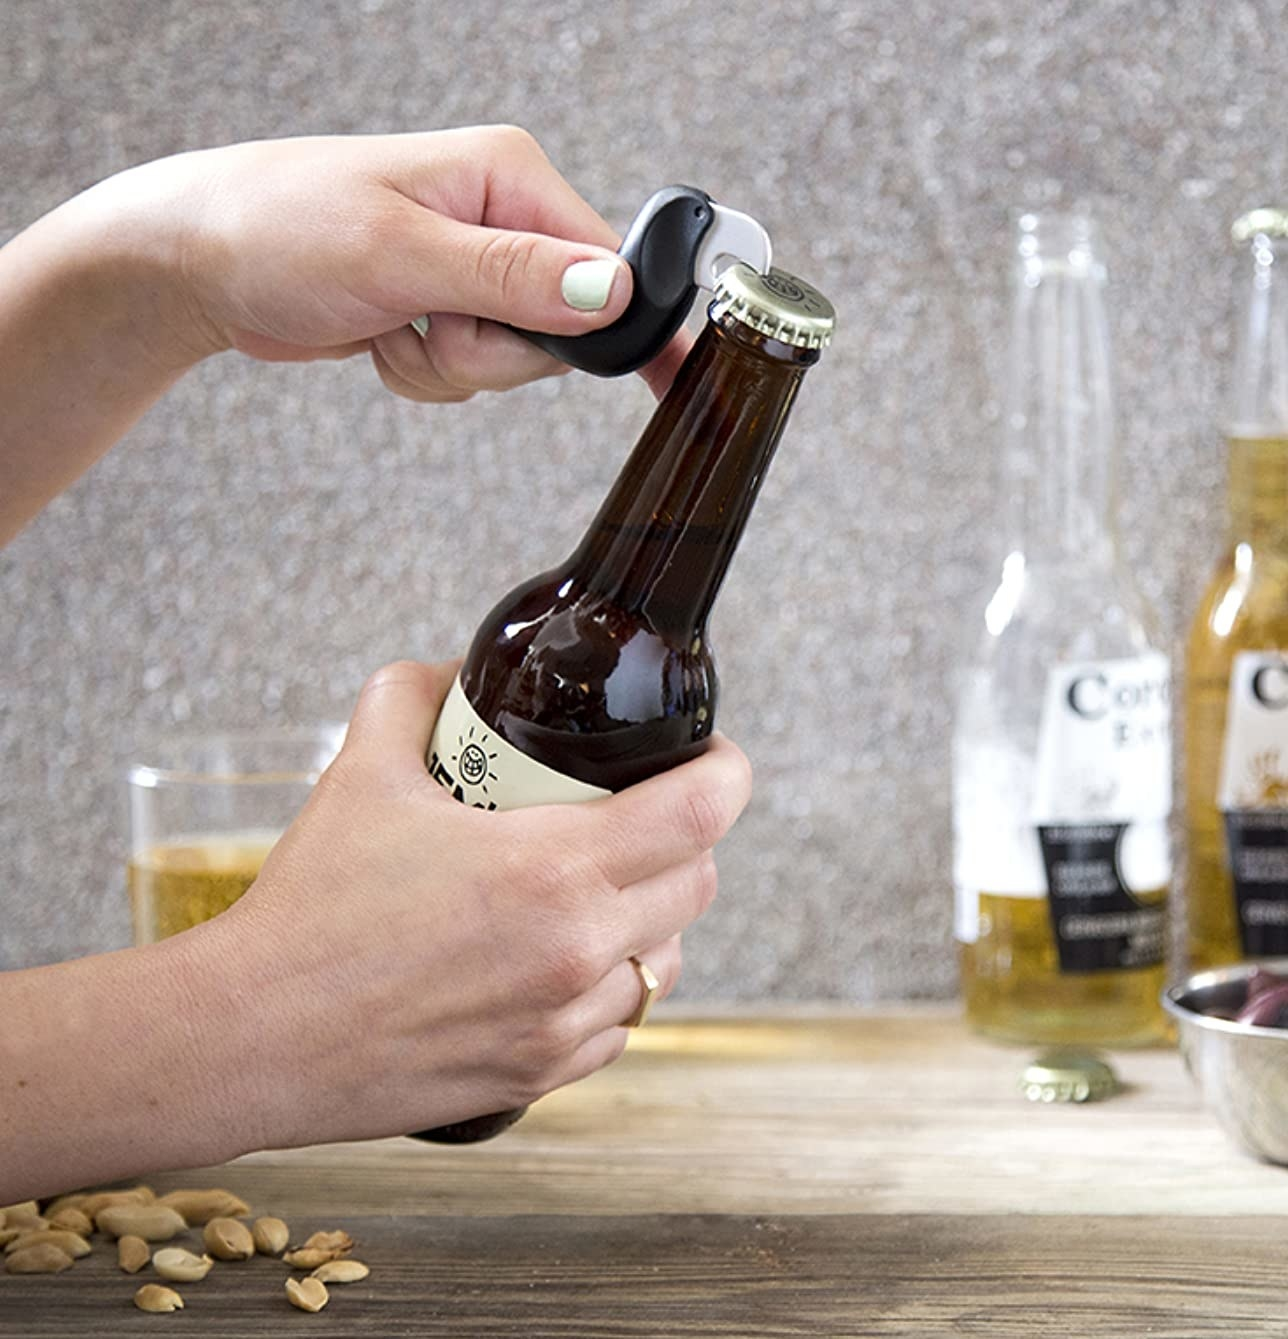 Hand opening beer with the bird-shaped opener